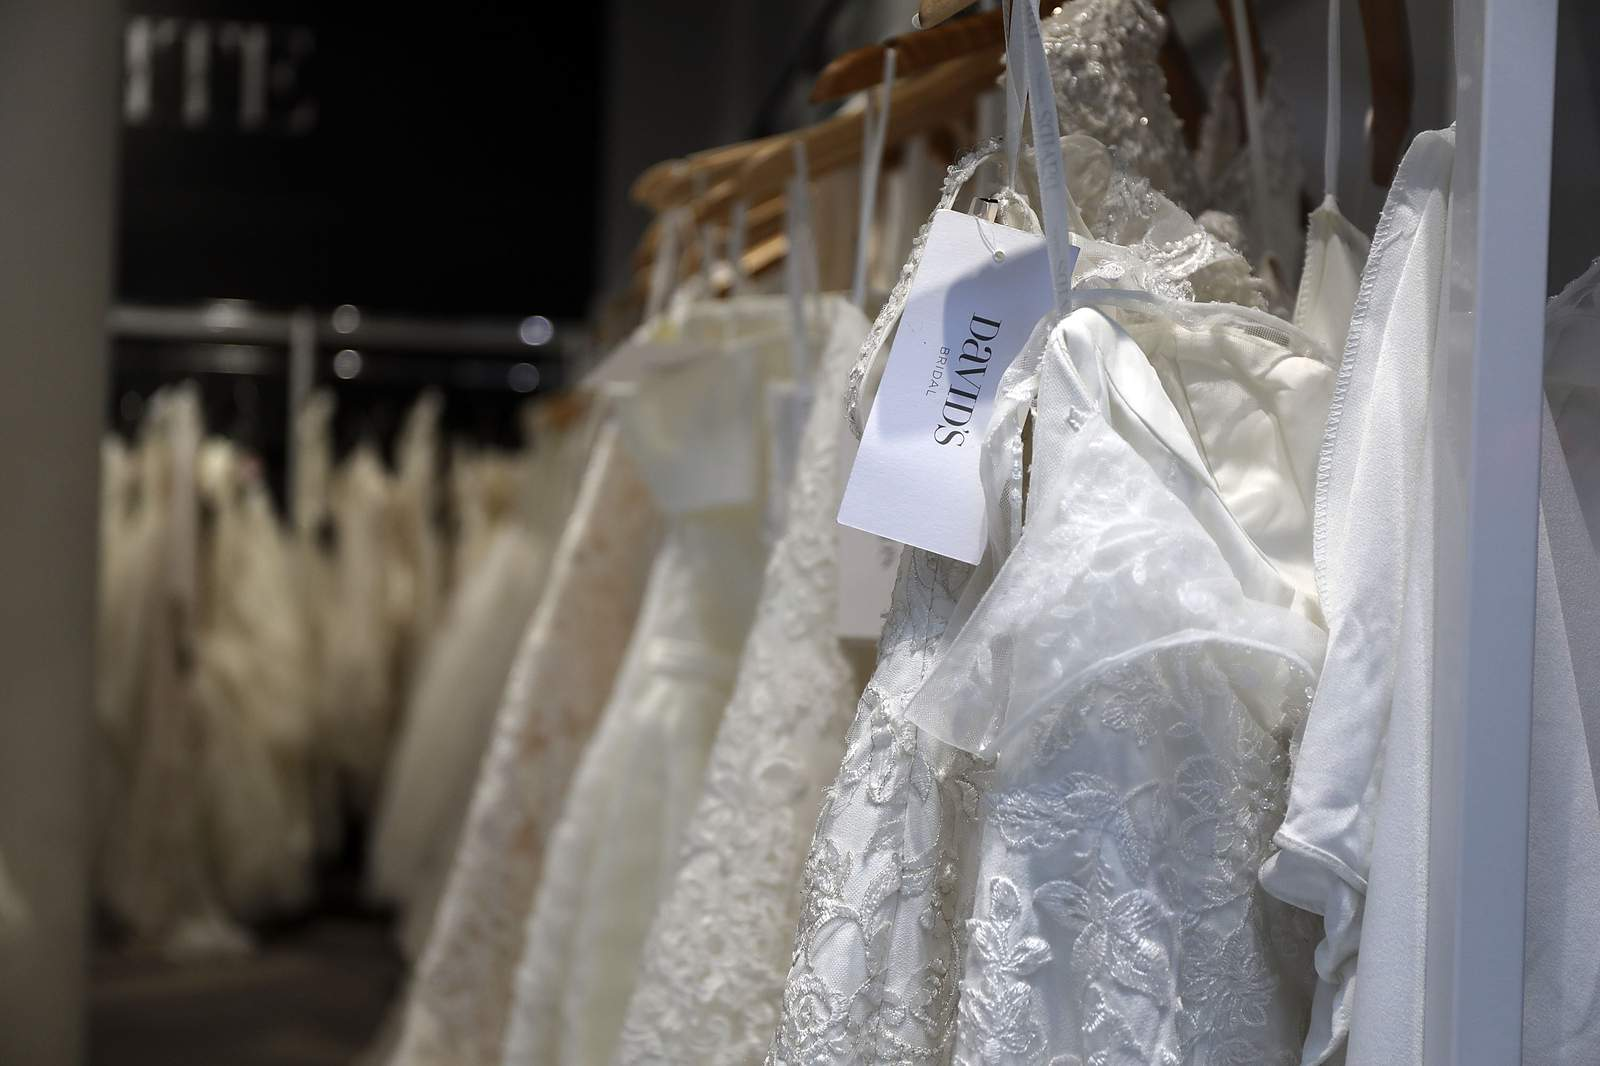 Bridal Gowns Could Be In Short Supply